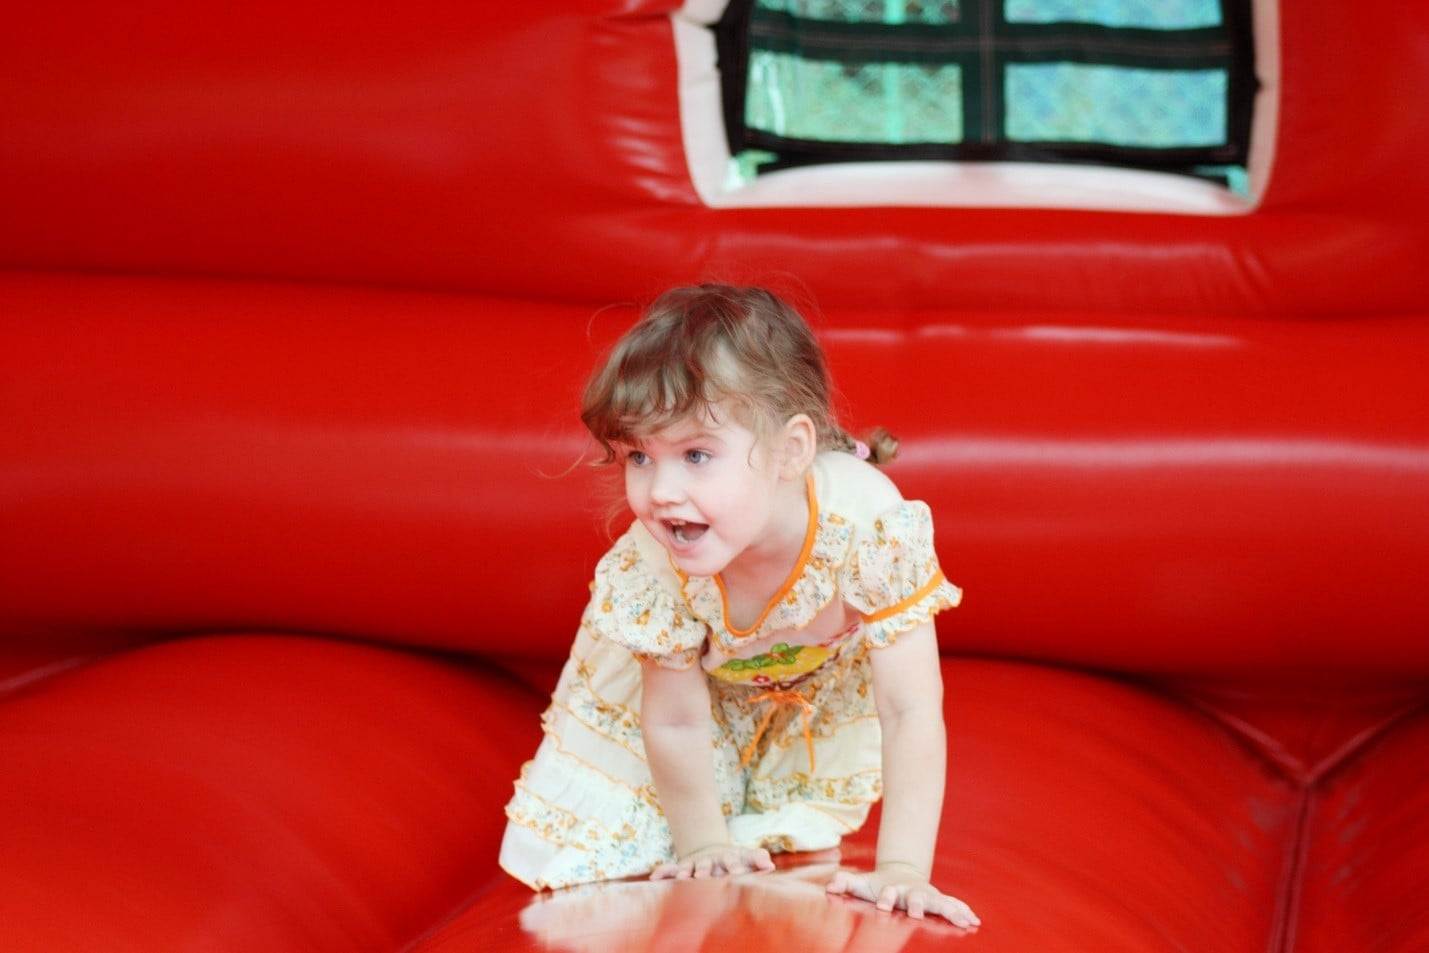 Bounce House Accidents on the Rise